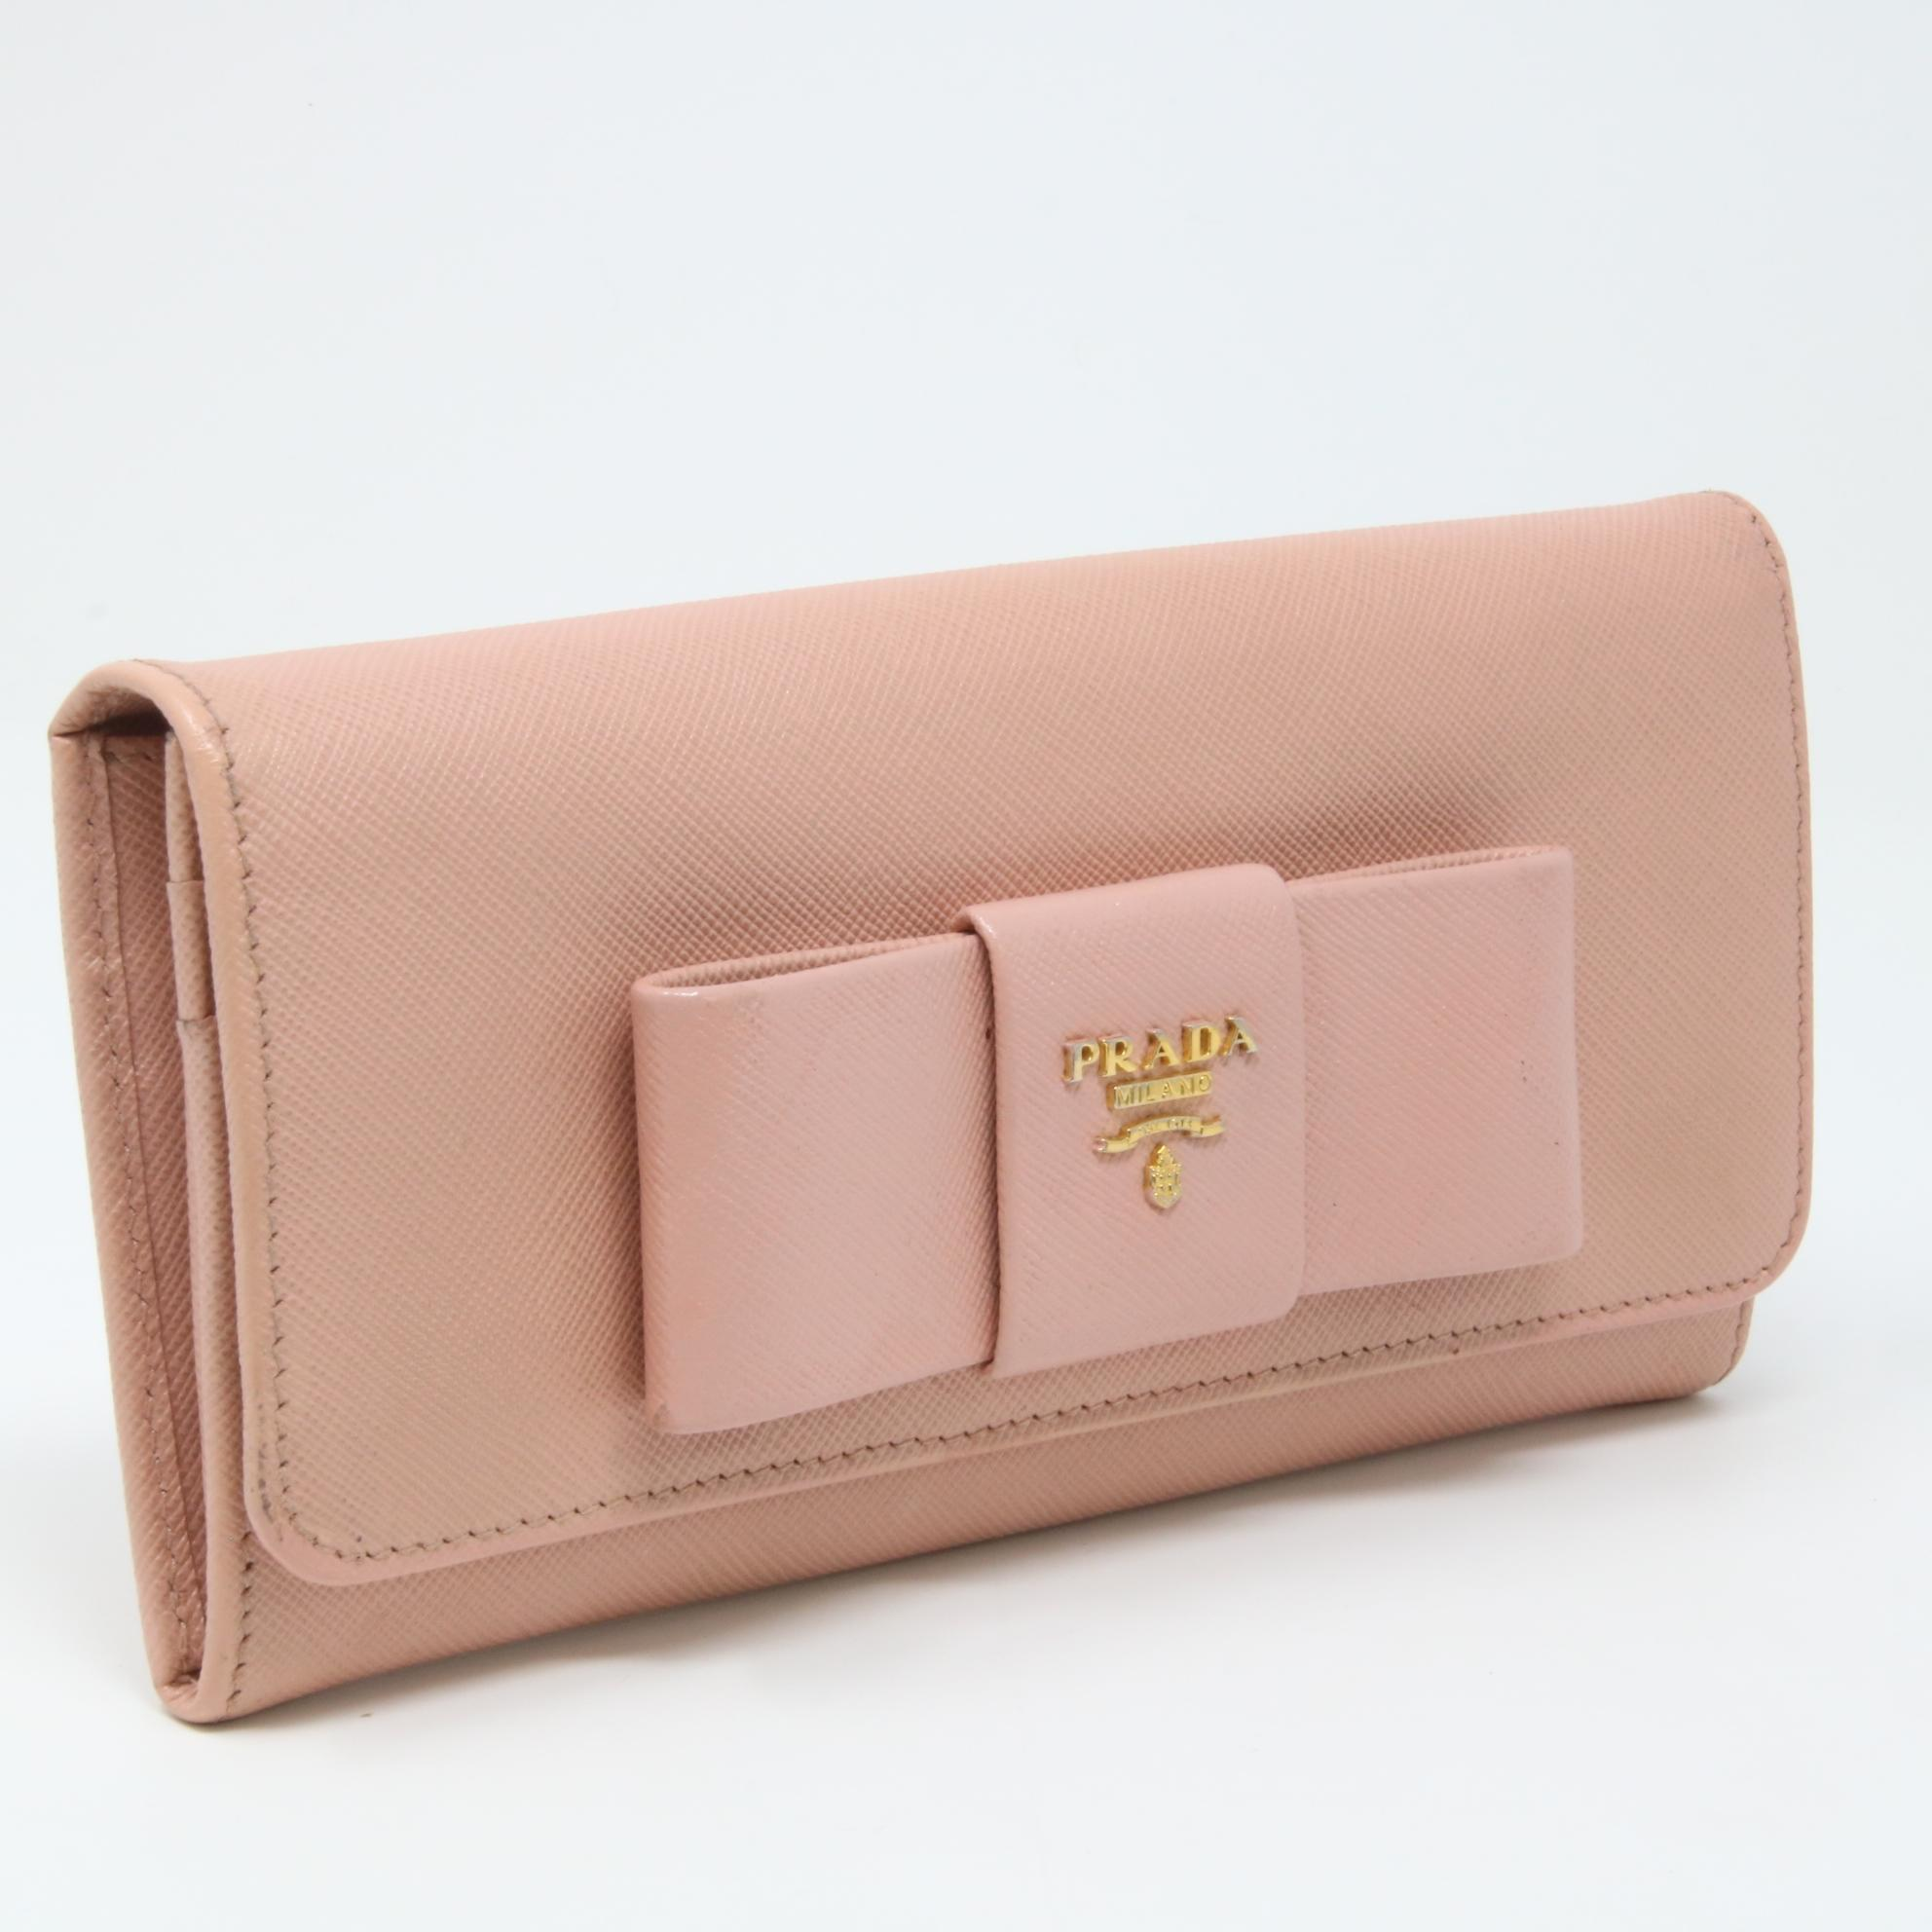 ... store prada classic saffiano ribbon logo leather bow long wallet.  1234567891011 113c9 ead6c f9e748e42e927